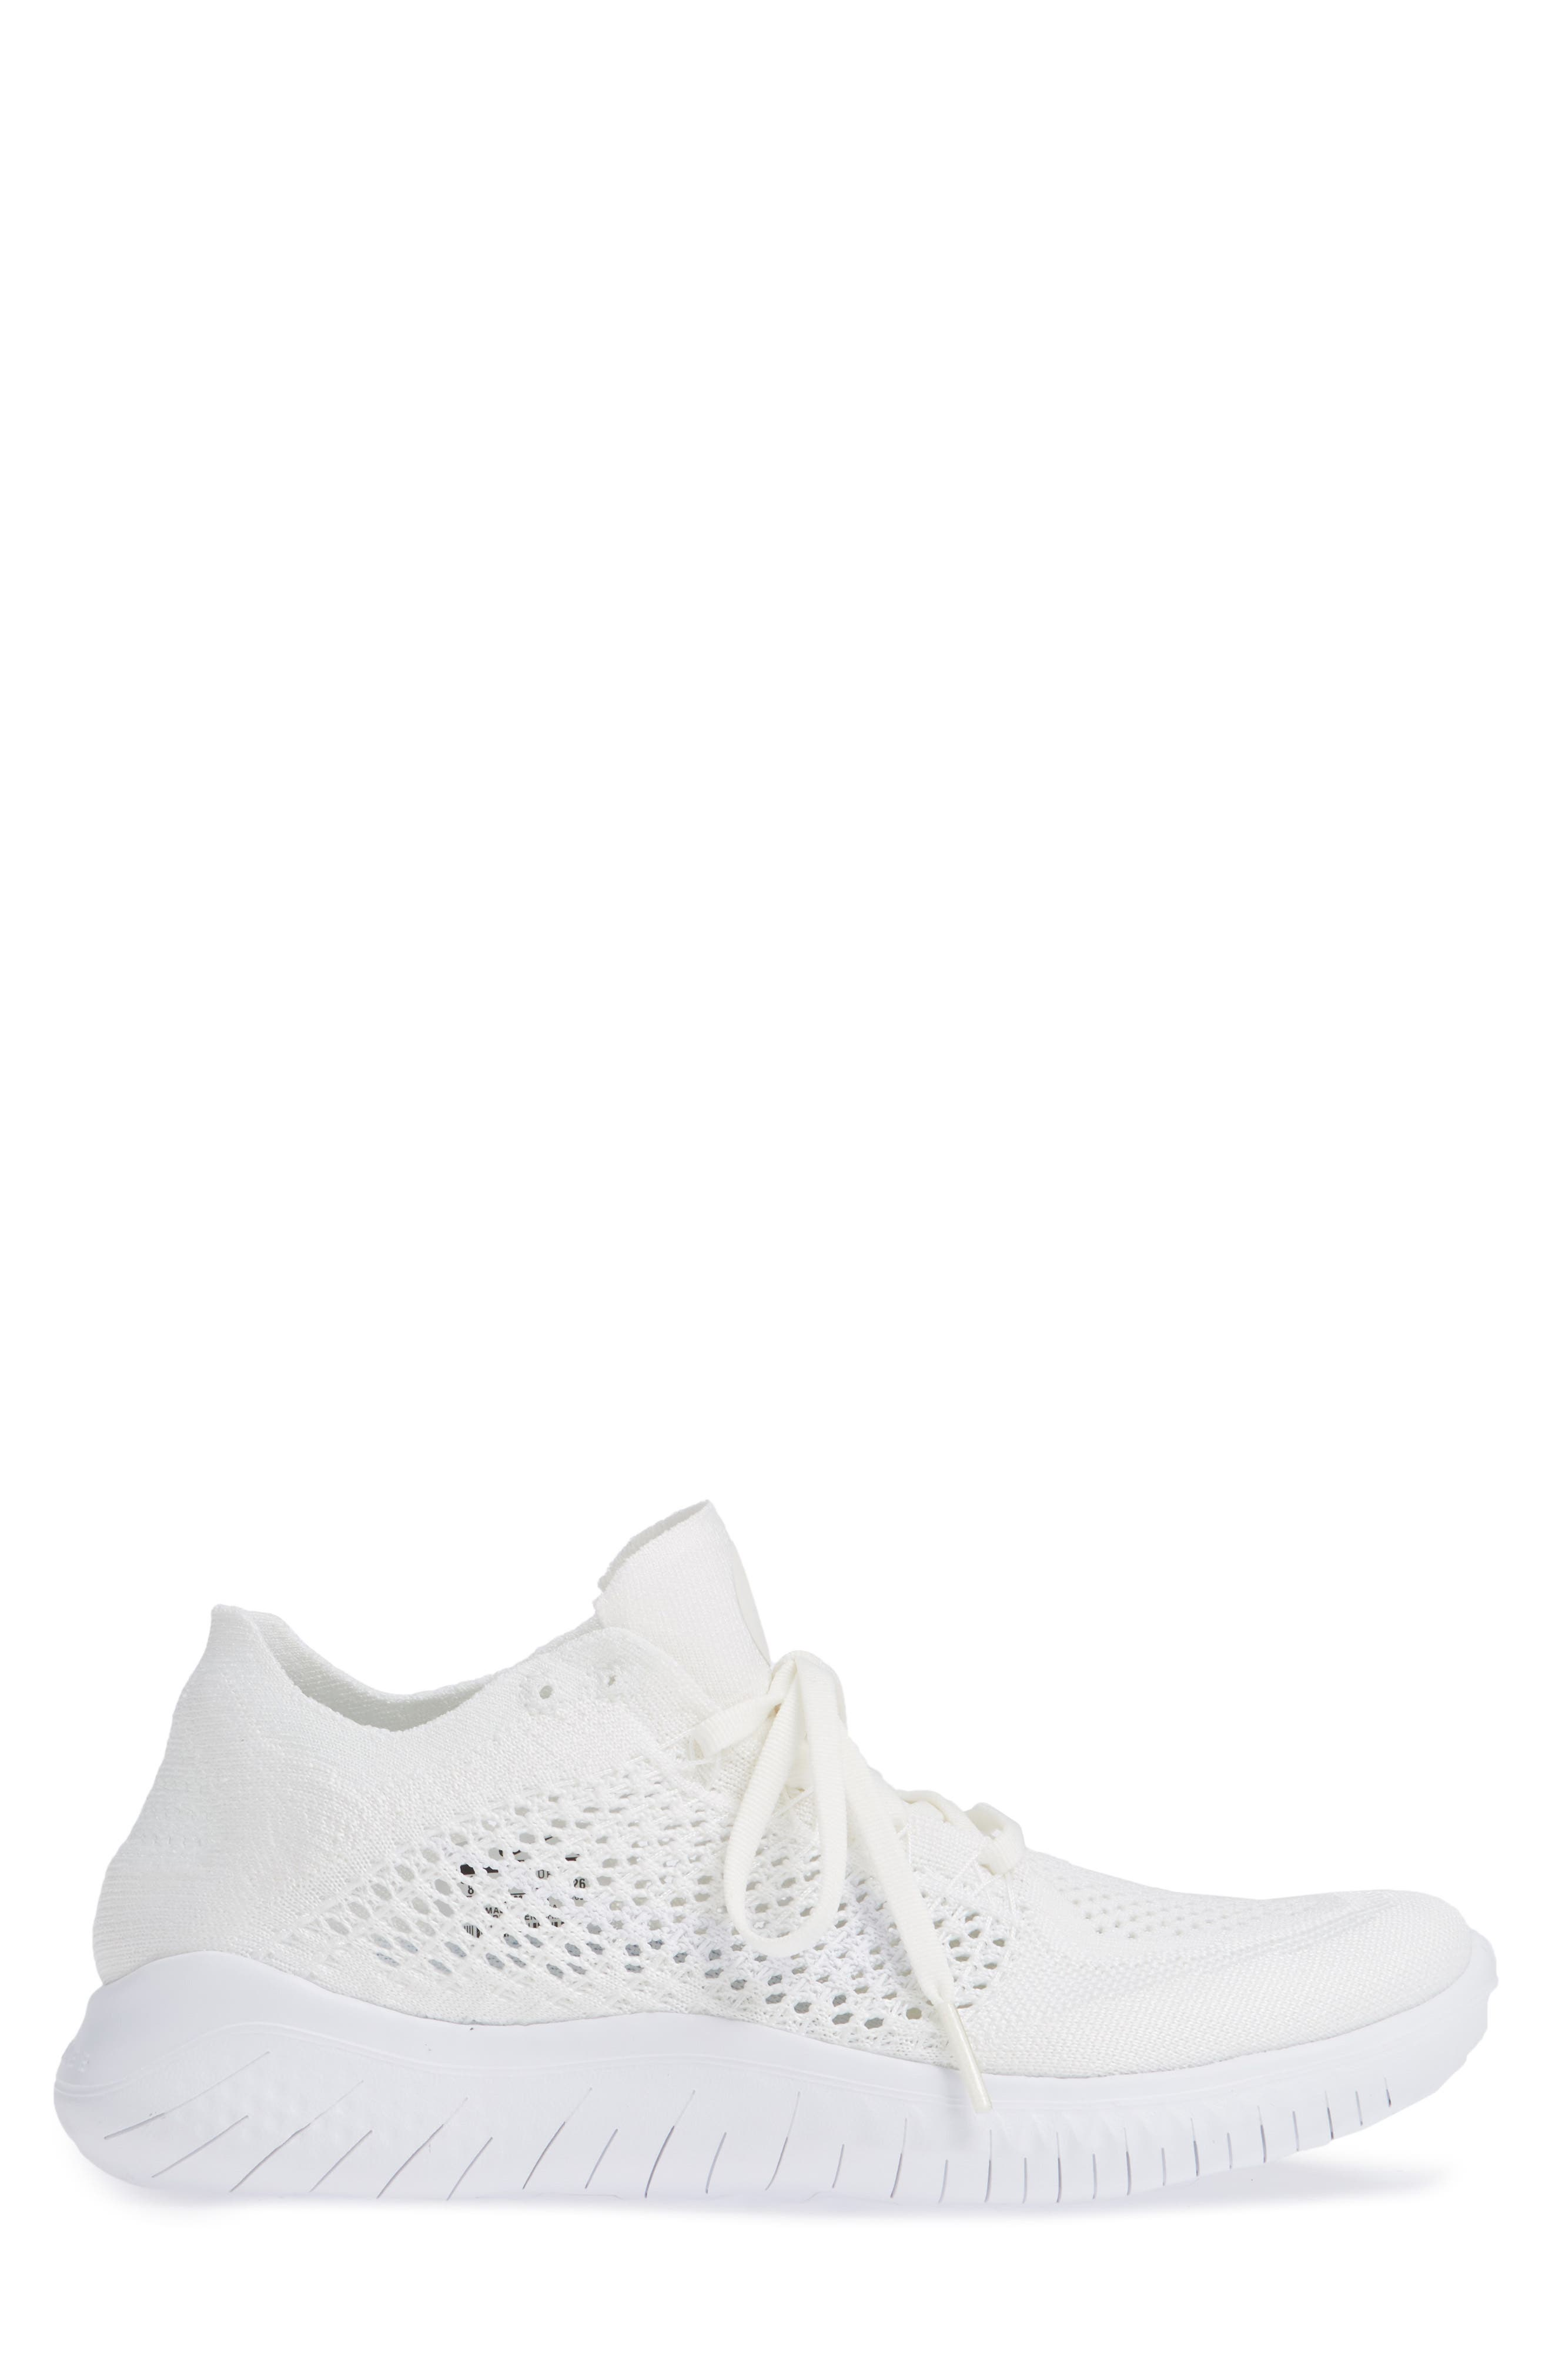 NIKE,                             Free RN Flyknit 2018 Running Shoe,                             Alternate thumbnail 3, color,                             WHITE/ WHITE